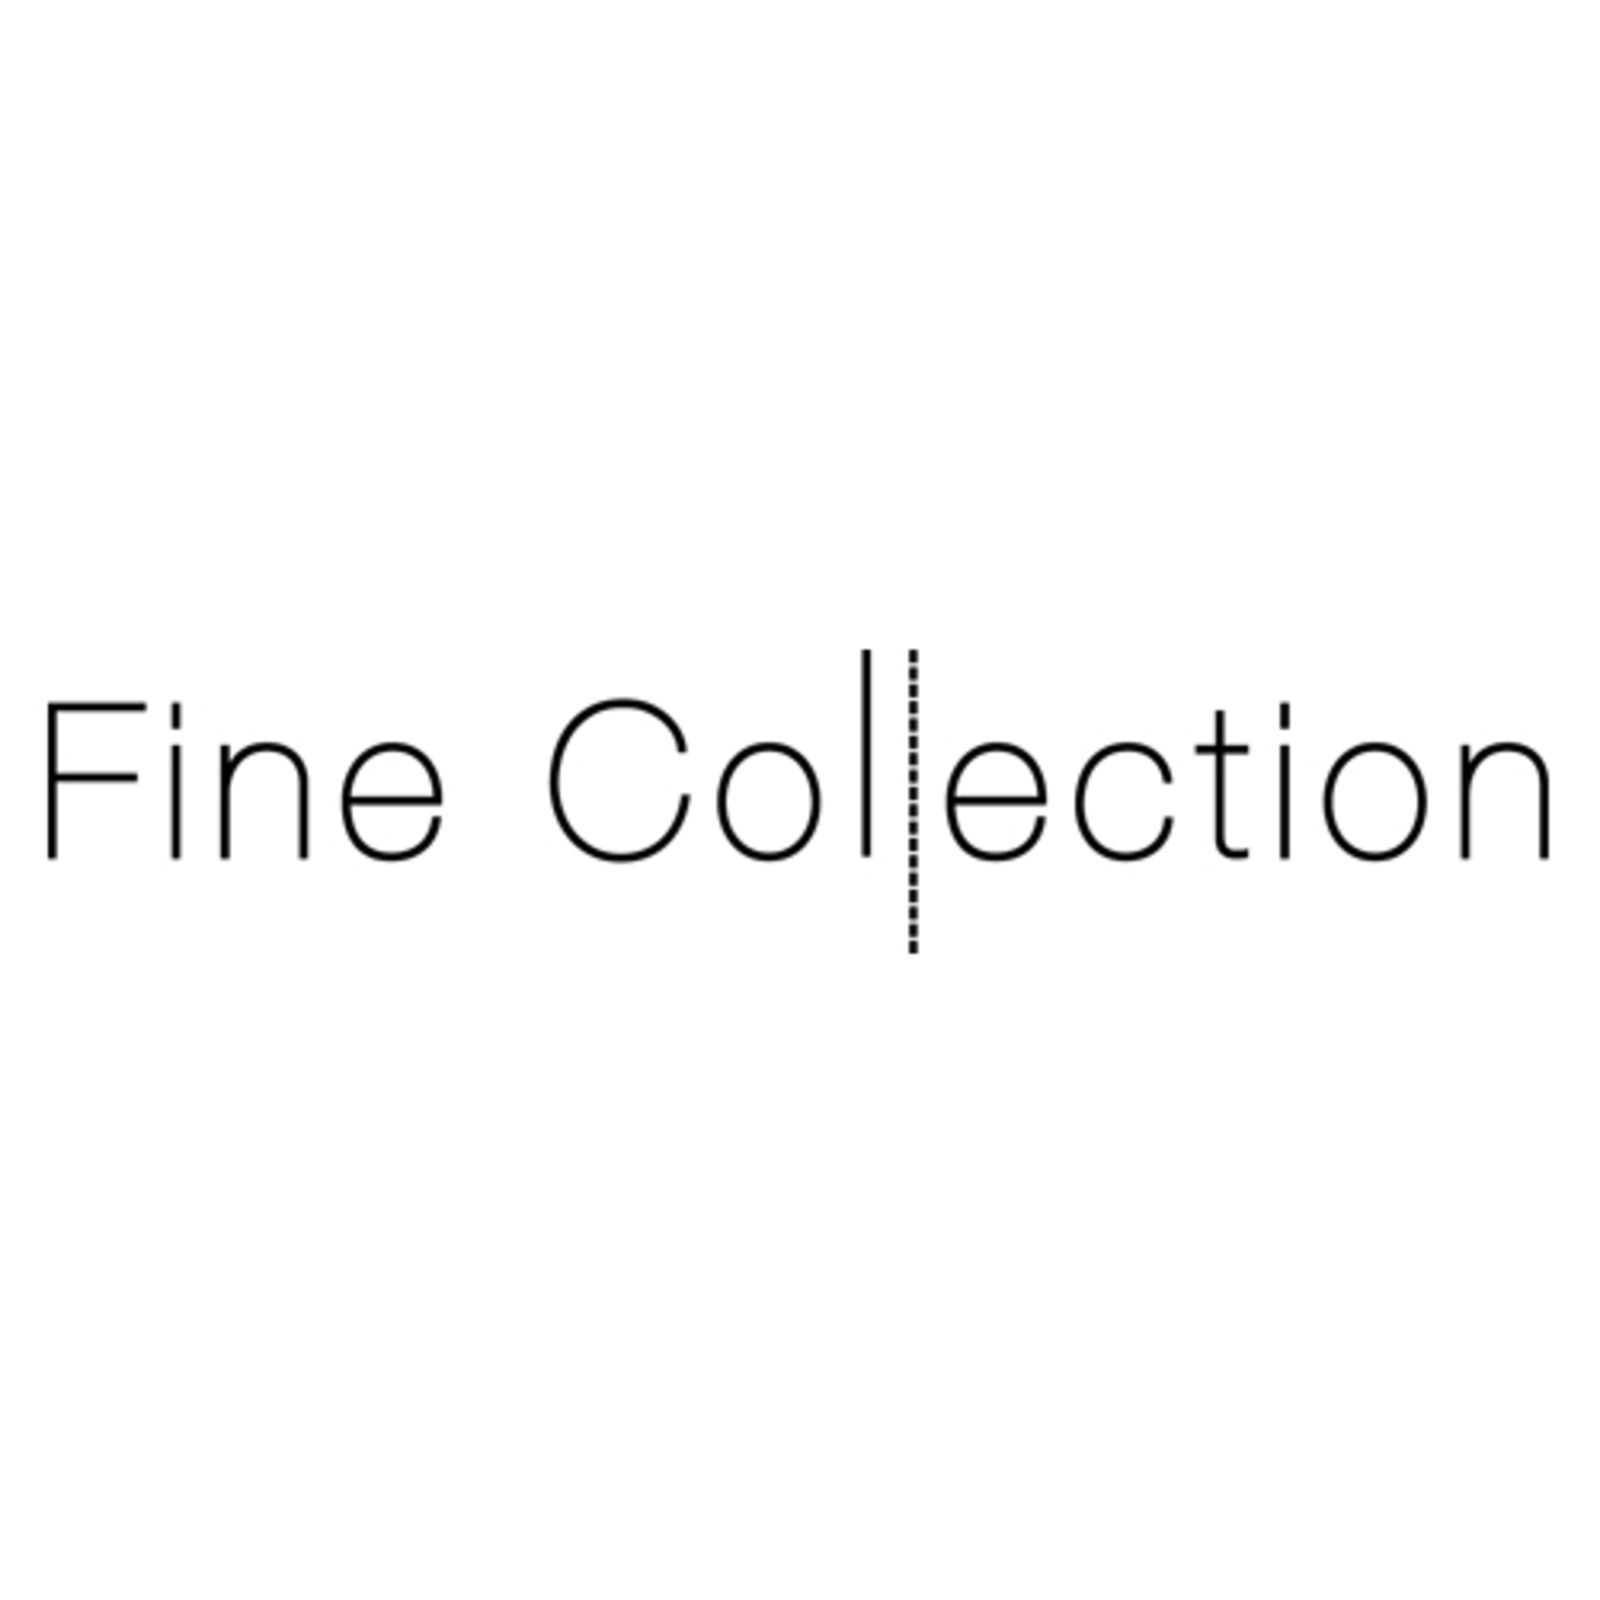 Fine Collection